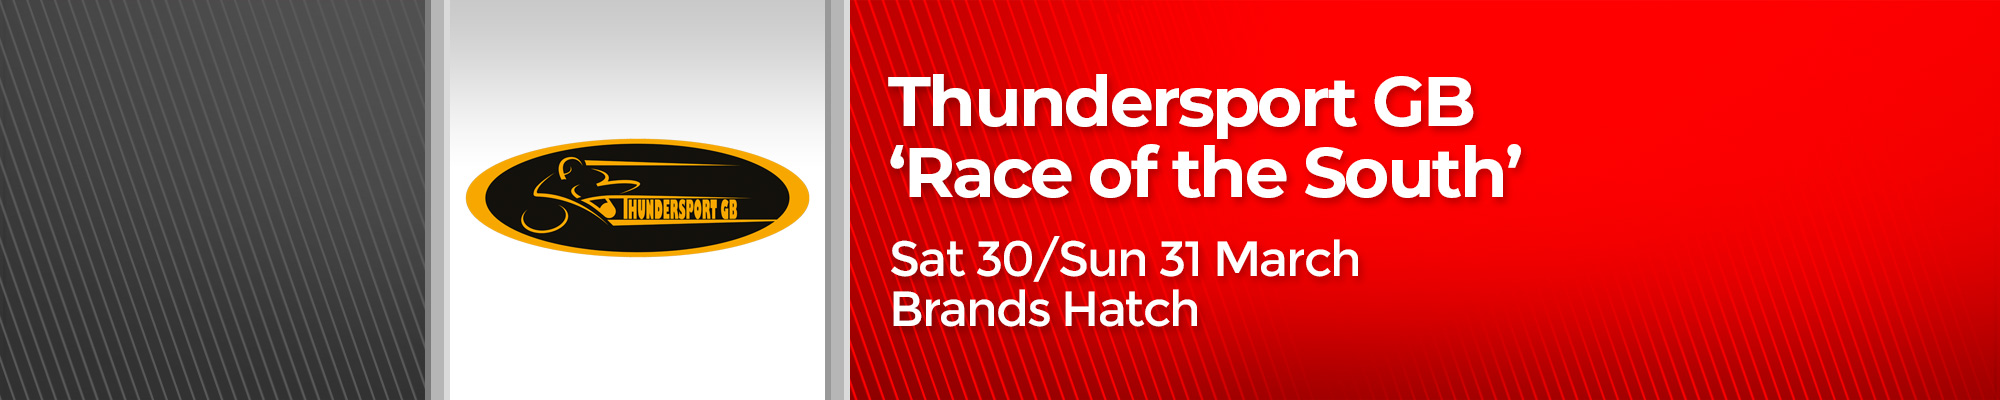 Thundersport GB 'Race of the South'